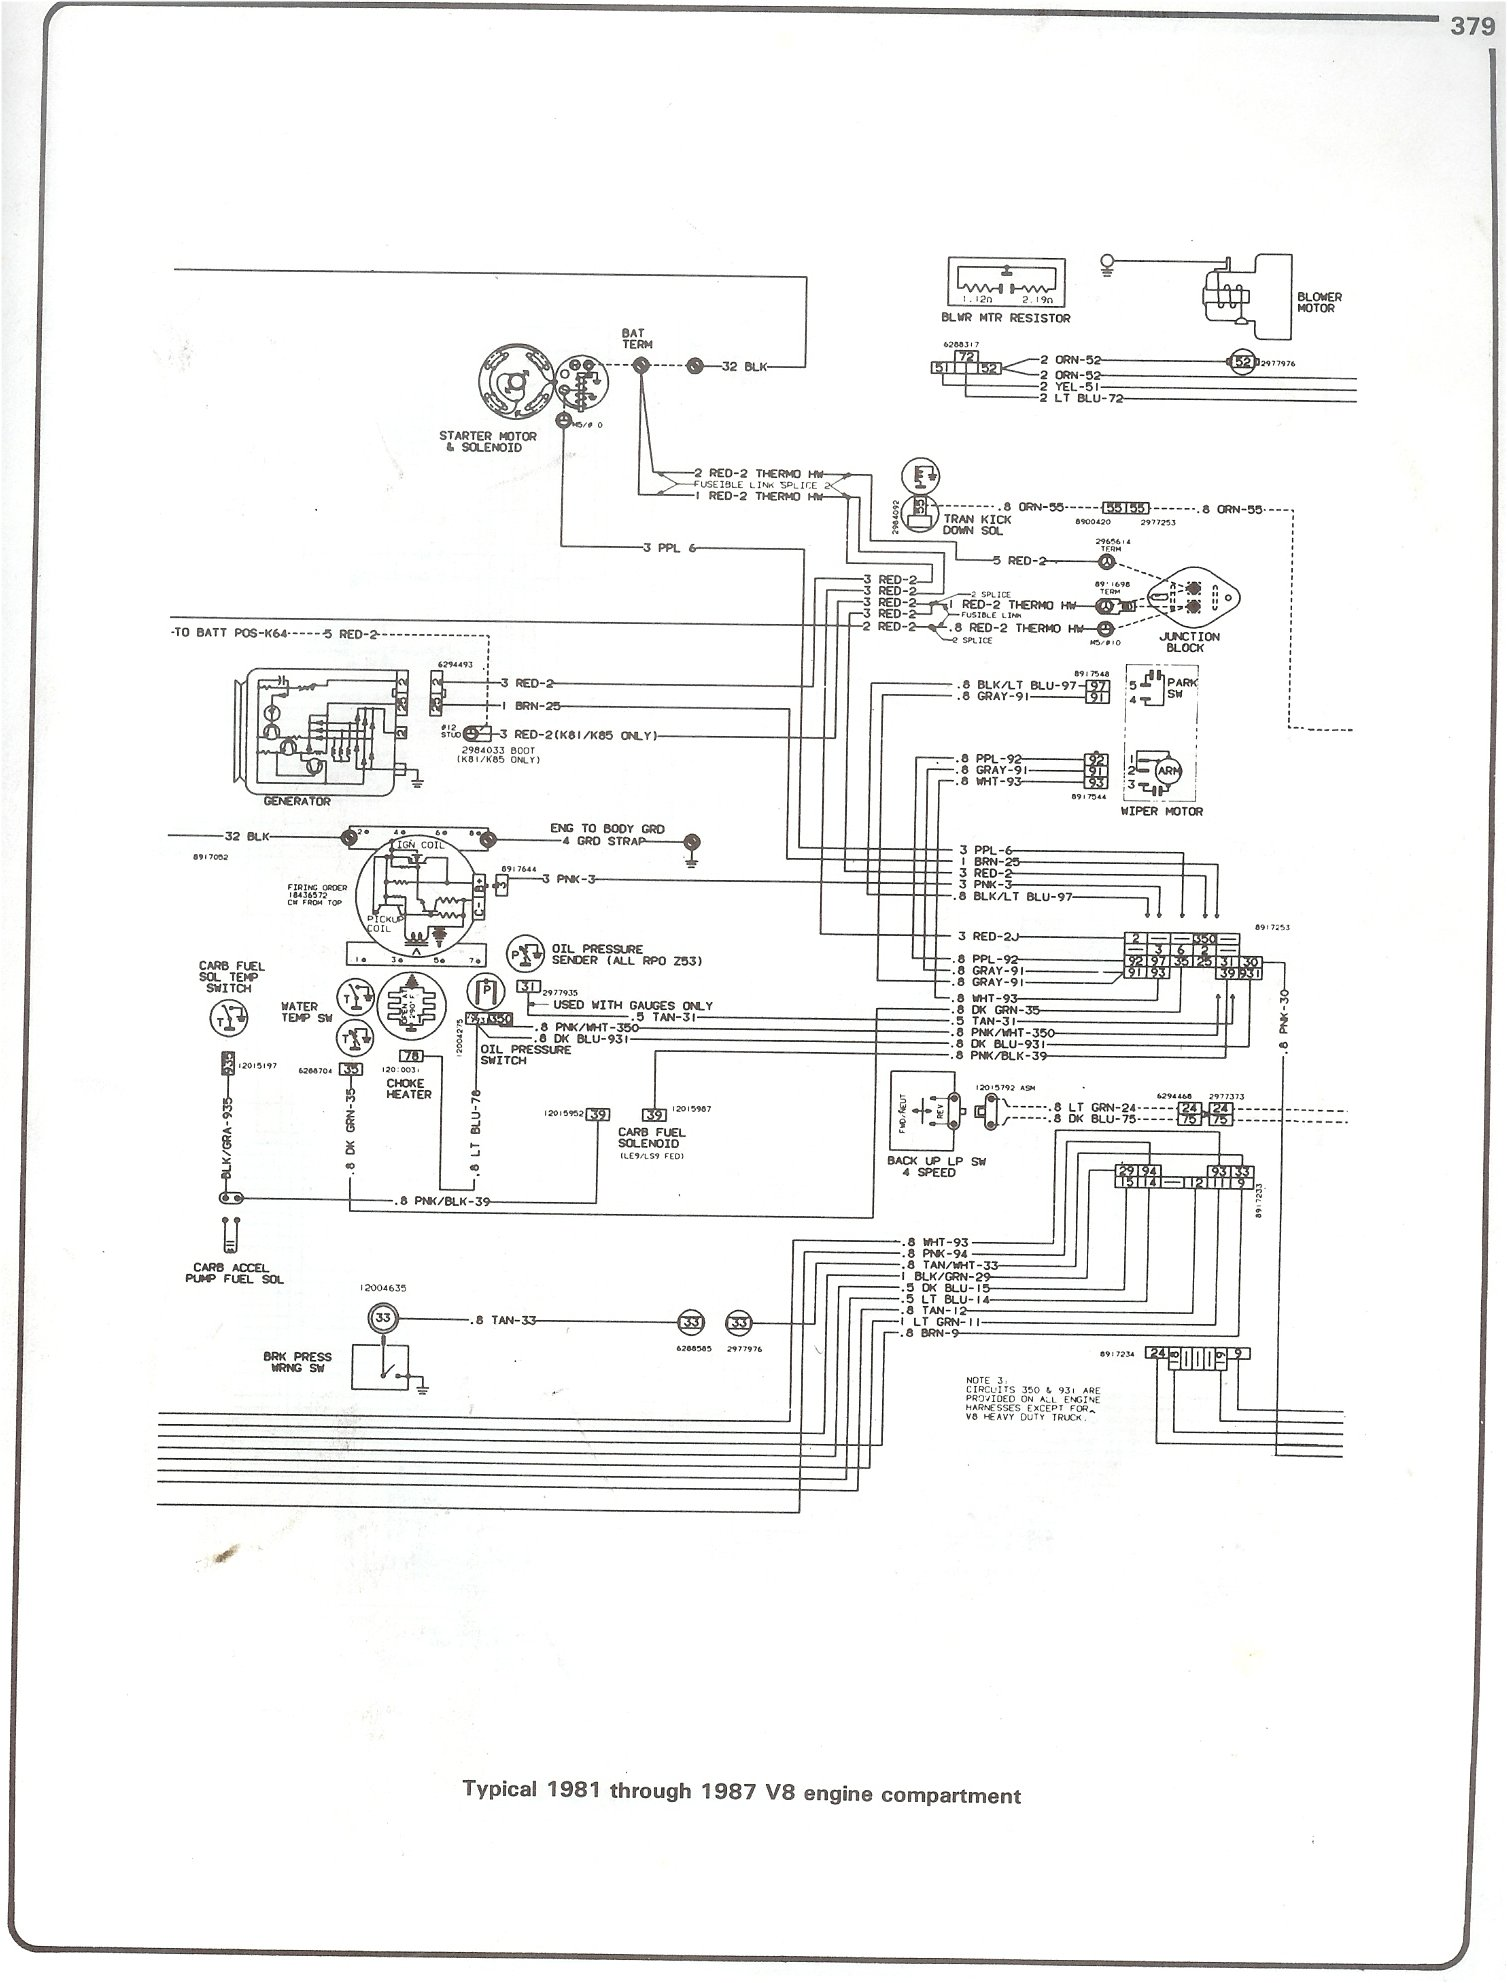 hight resolution of complete 73 87 wiring diagrams 1999 suburban radio wiring diagram 81 87 v8 engine compartment